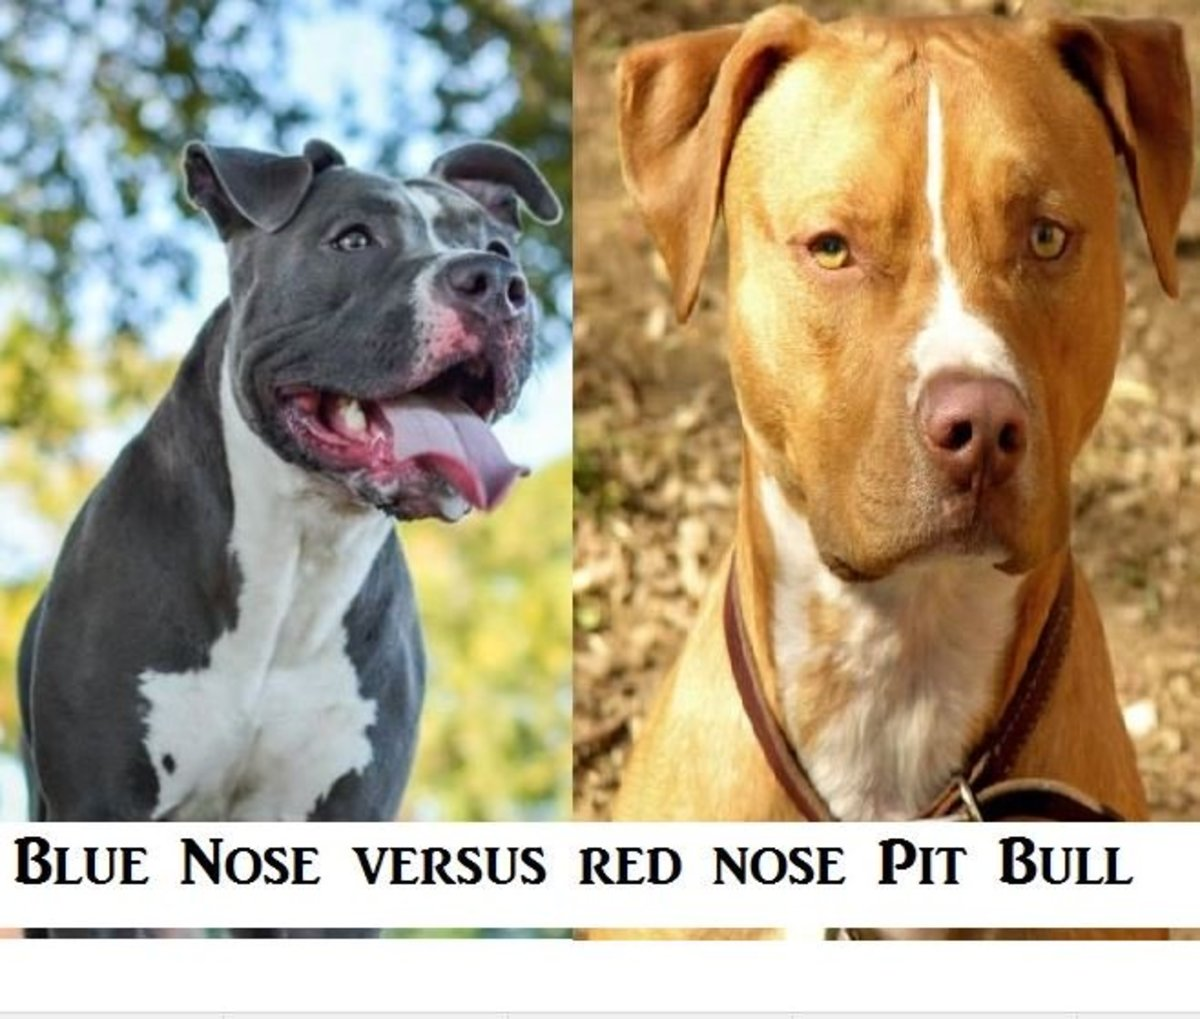 Facts About Blue Nose and Red Nose Pit Bulls